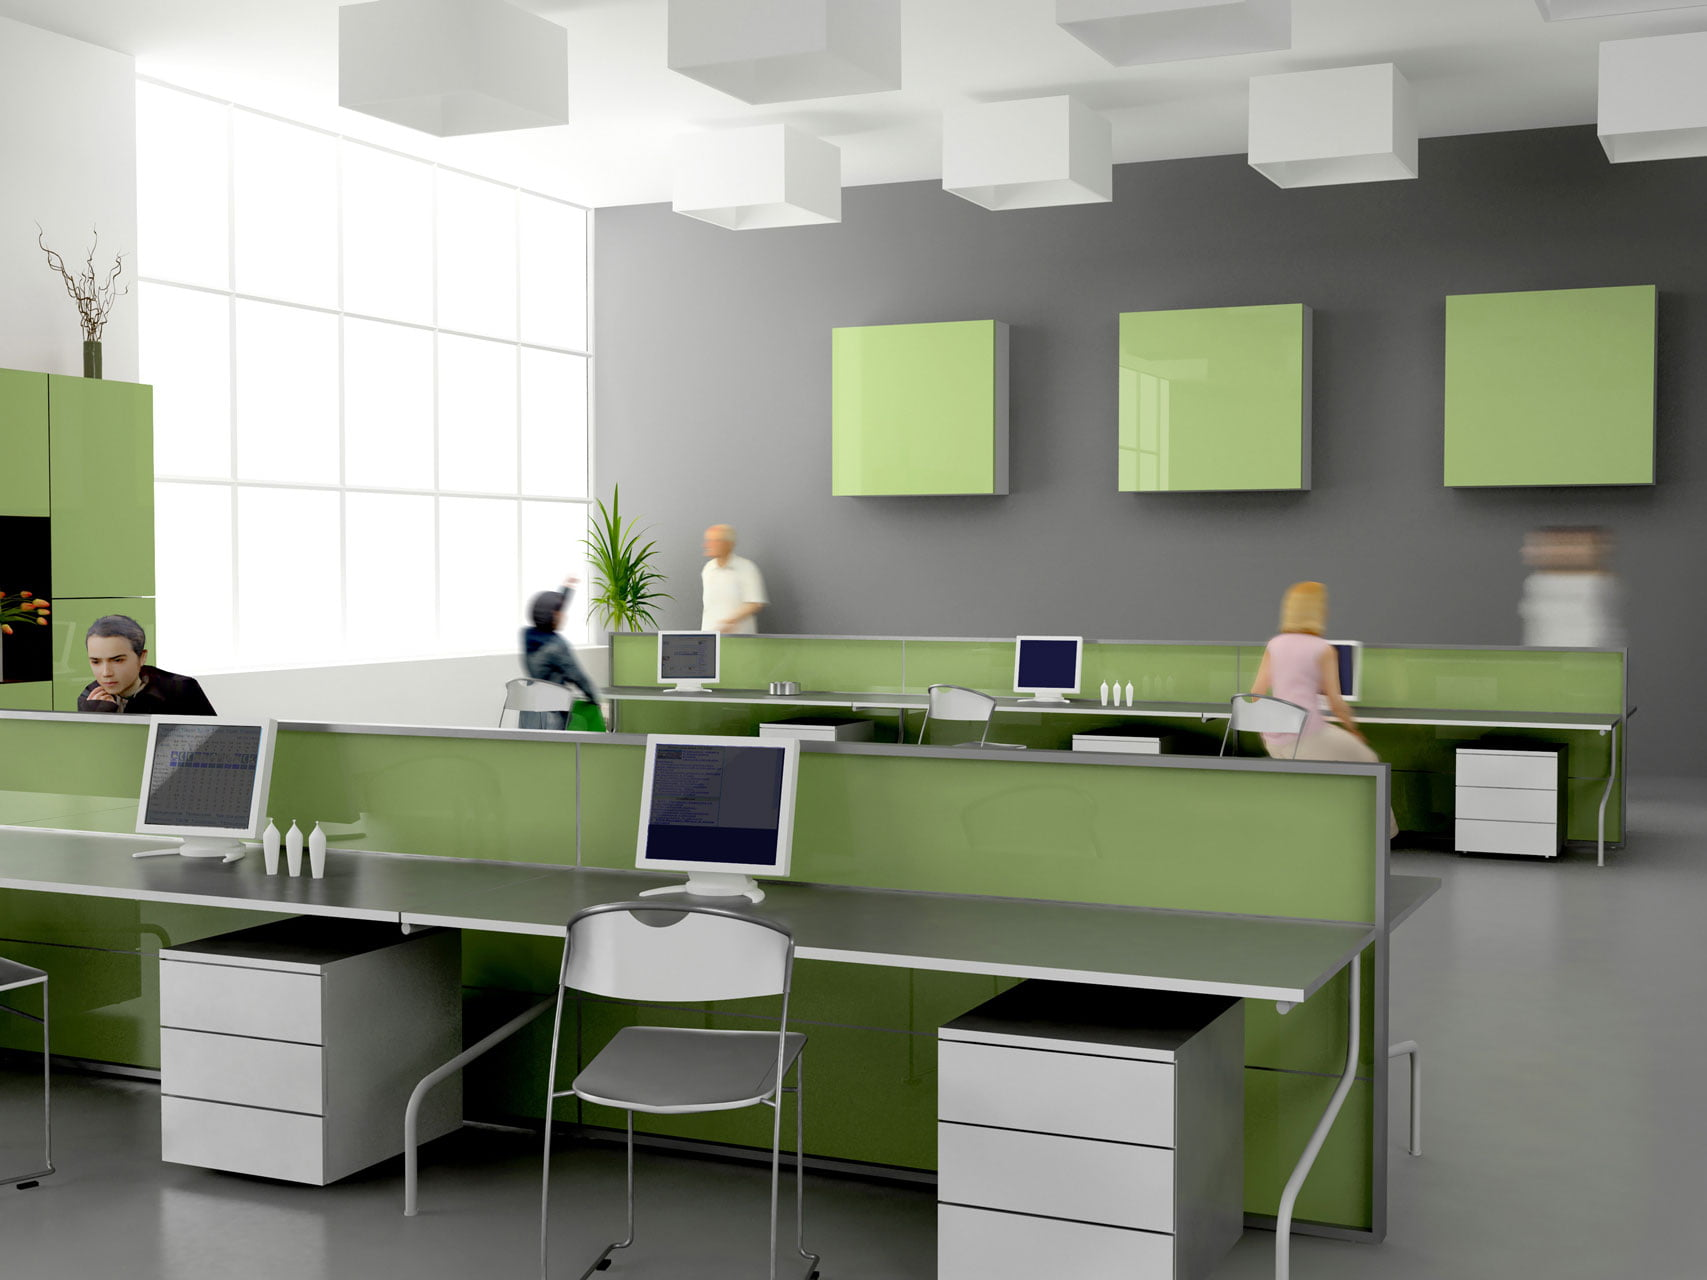 How To Design : Ideas Behind Designing Corporate Spaces